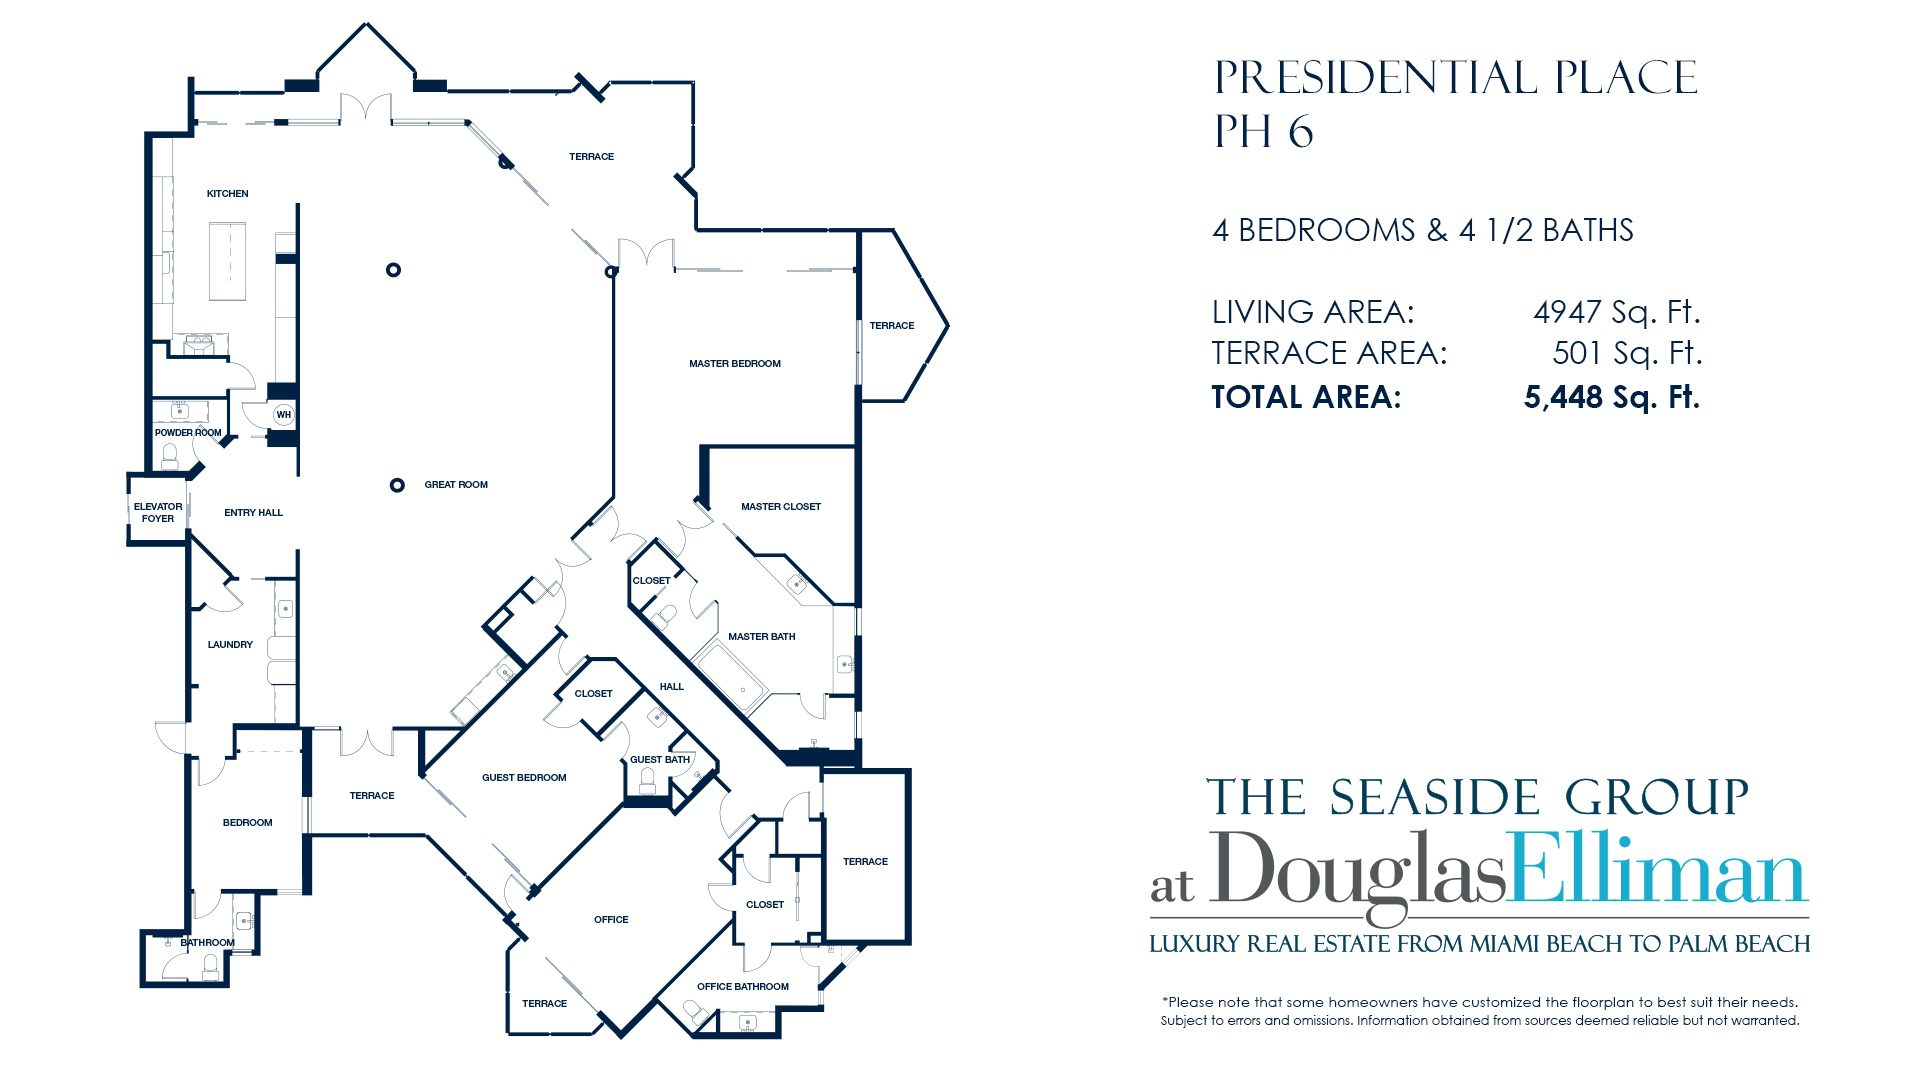 Floorplan for Penthouse 6 For Sale at Presidential Place, Boca Raton Florida 33432